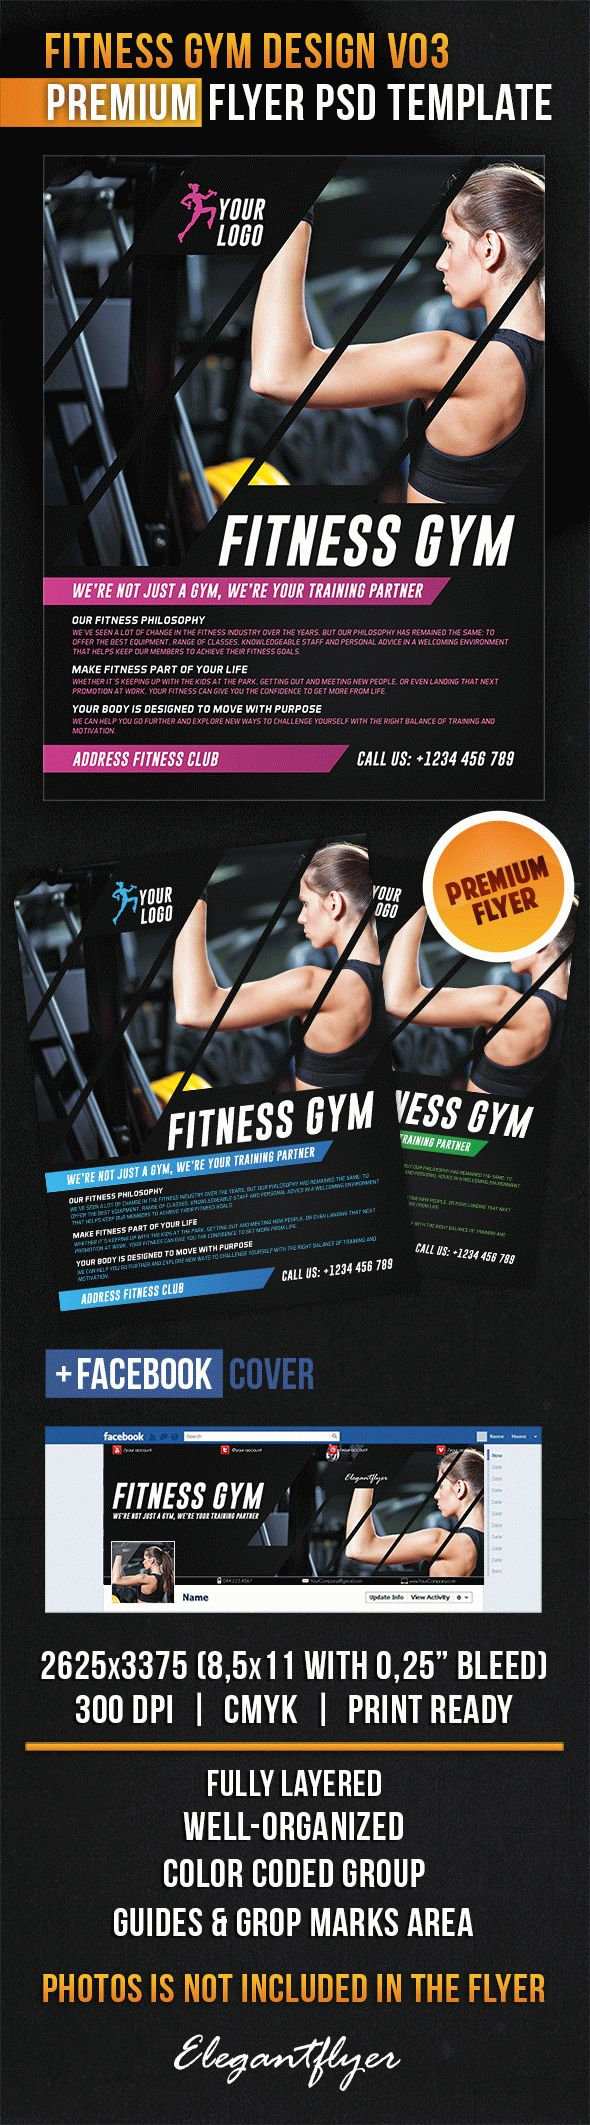 Fitness Gym Design V03 – Flyer PSD Template